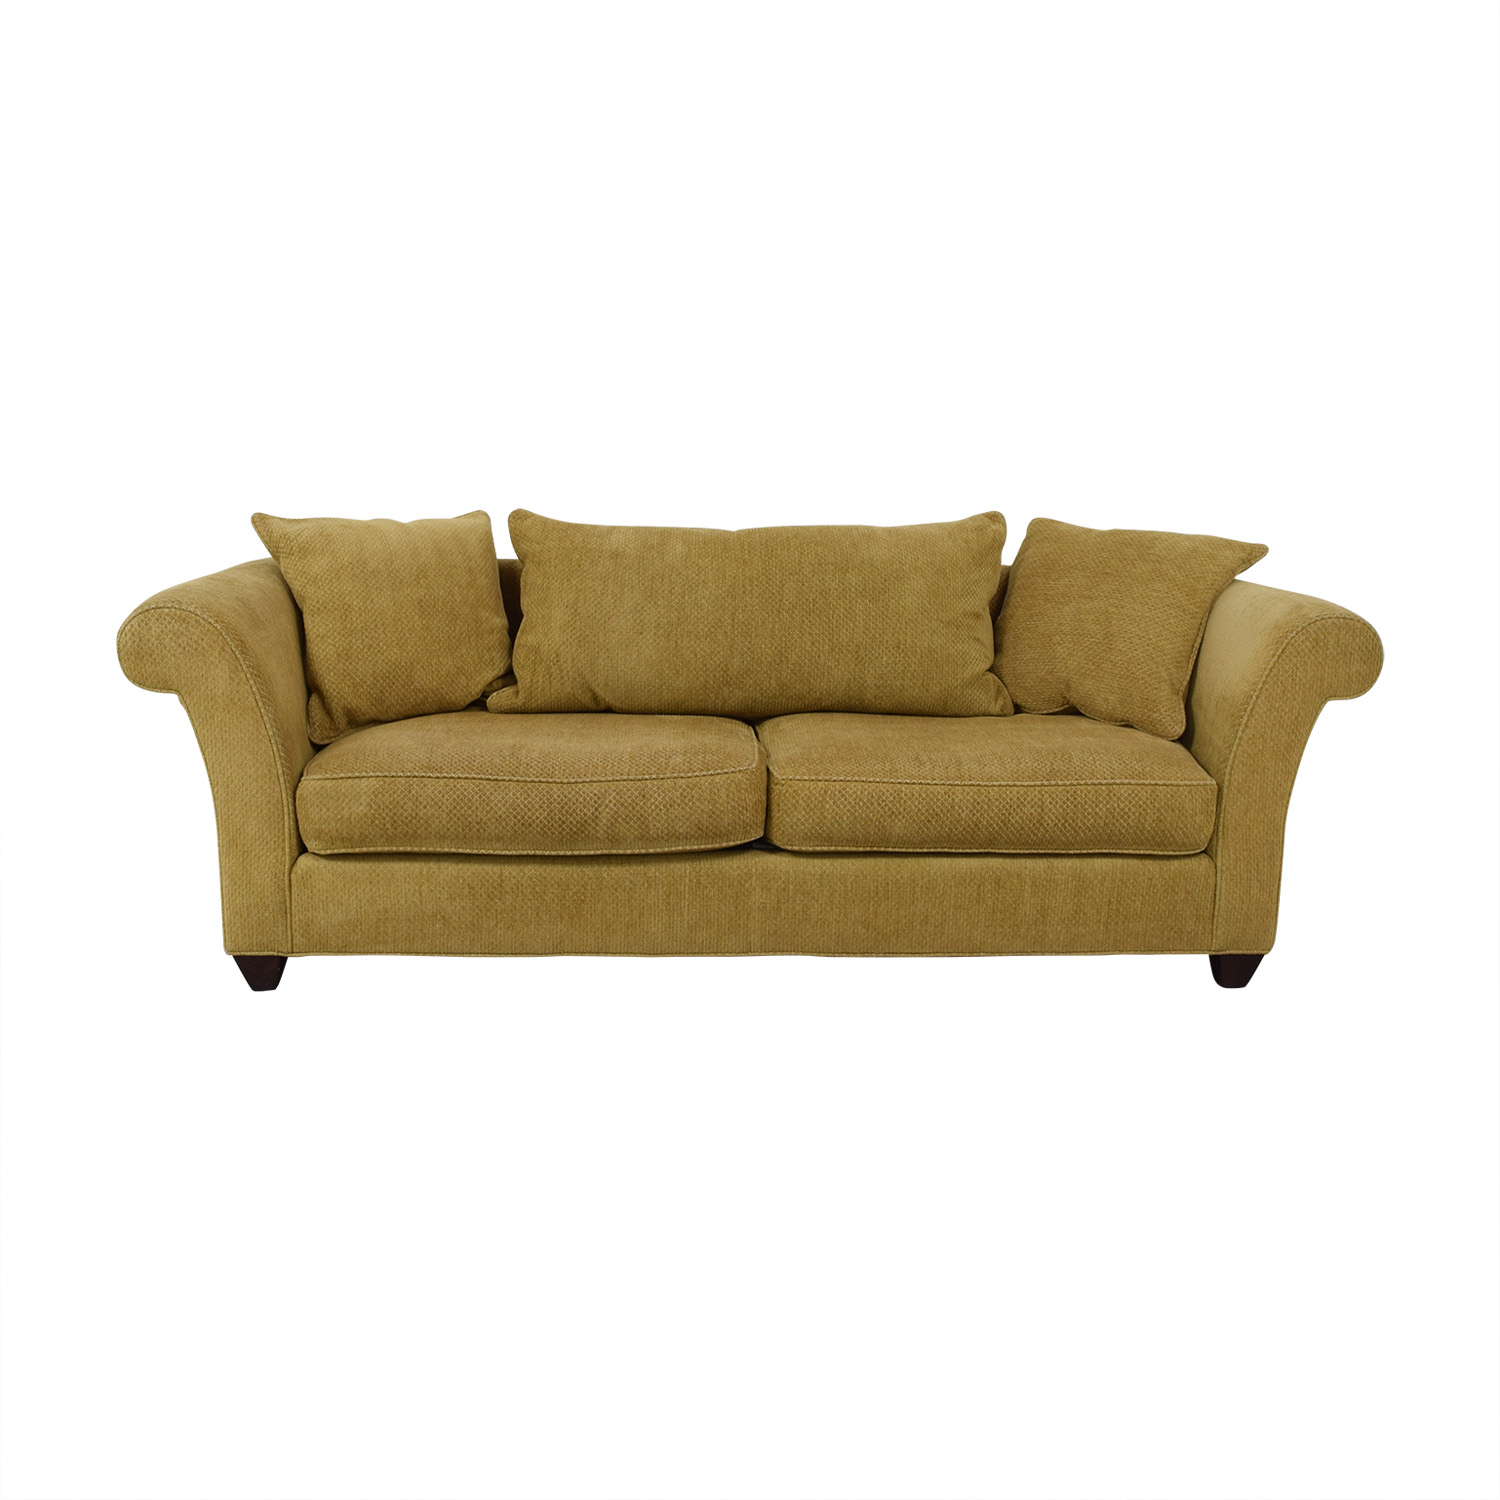 Two Cushion Roll Arm Sofa on sale